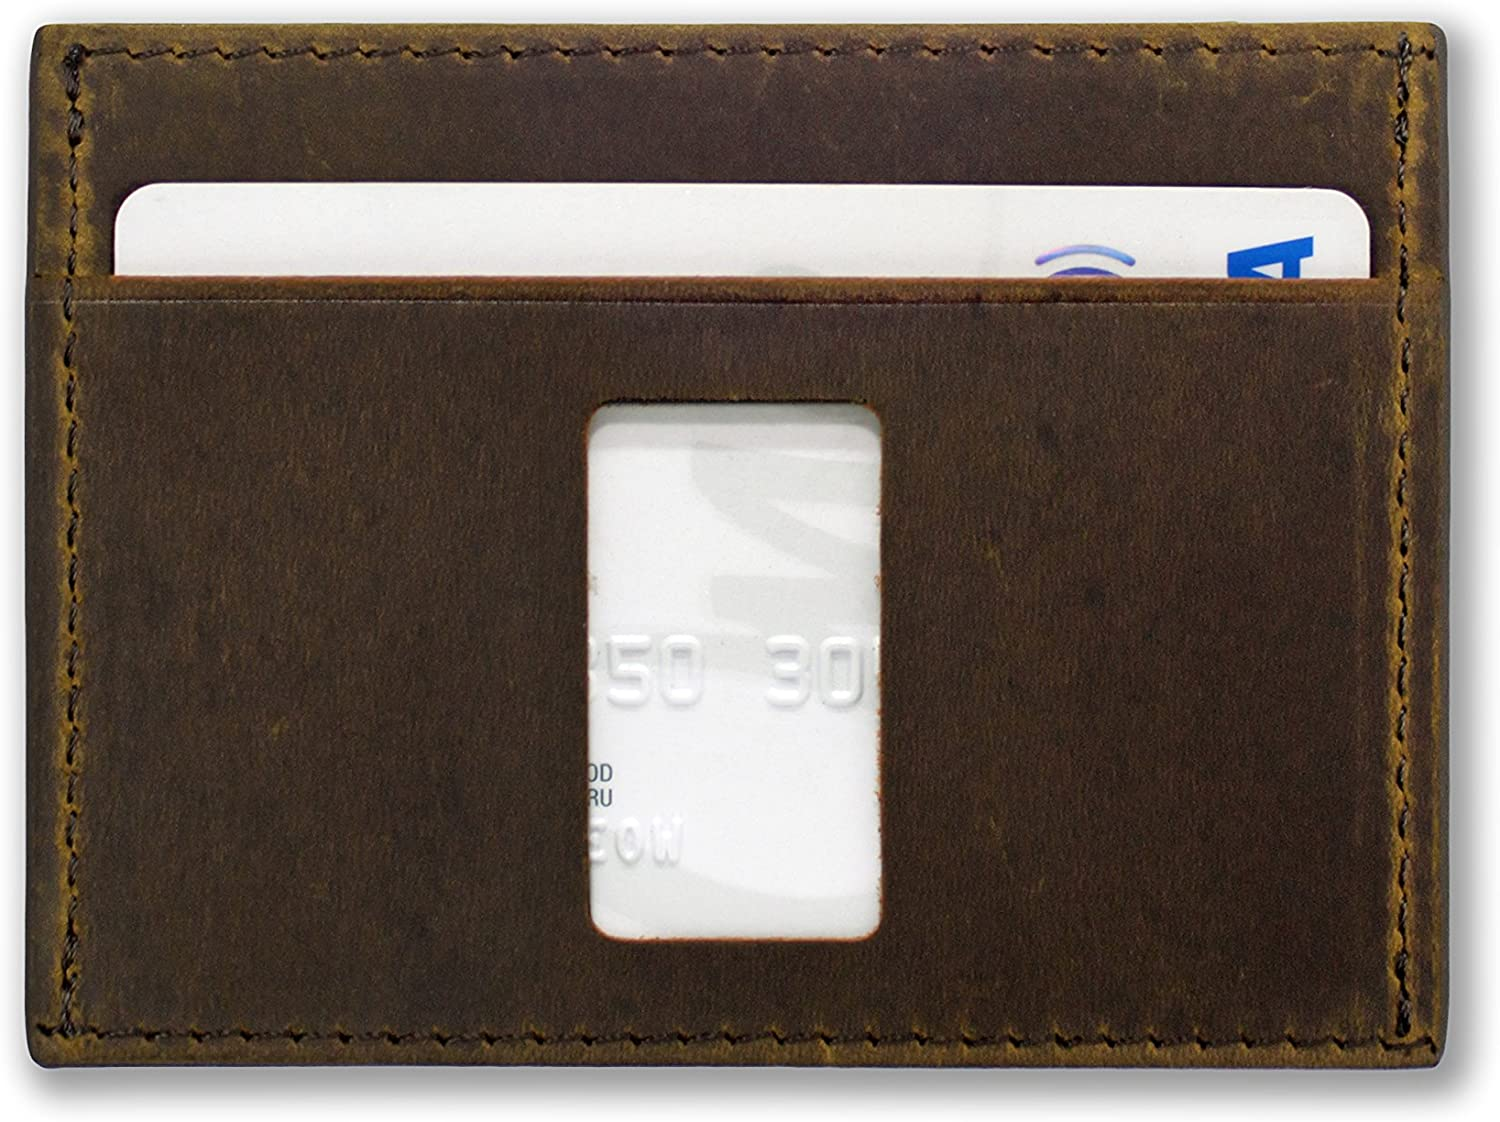 Haru collection Wallets and cards